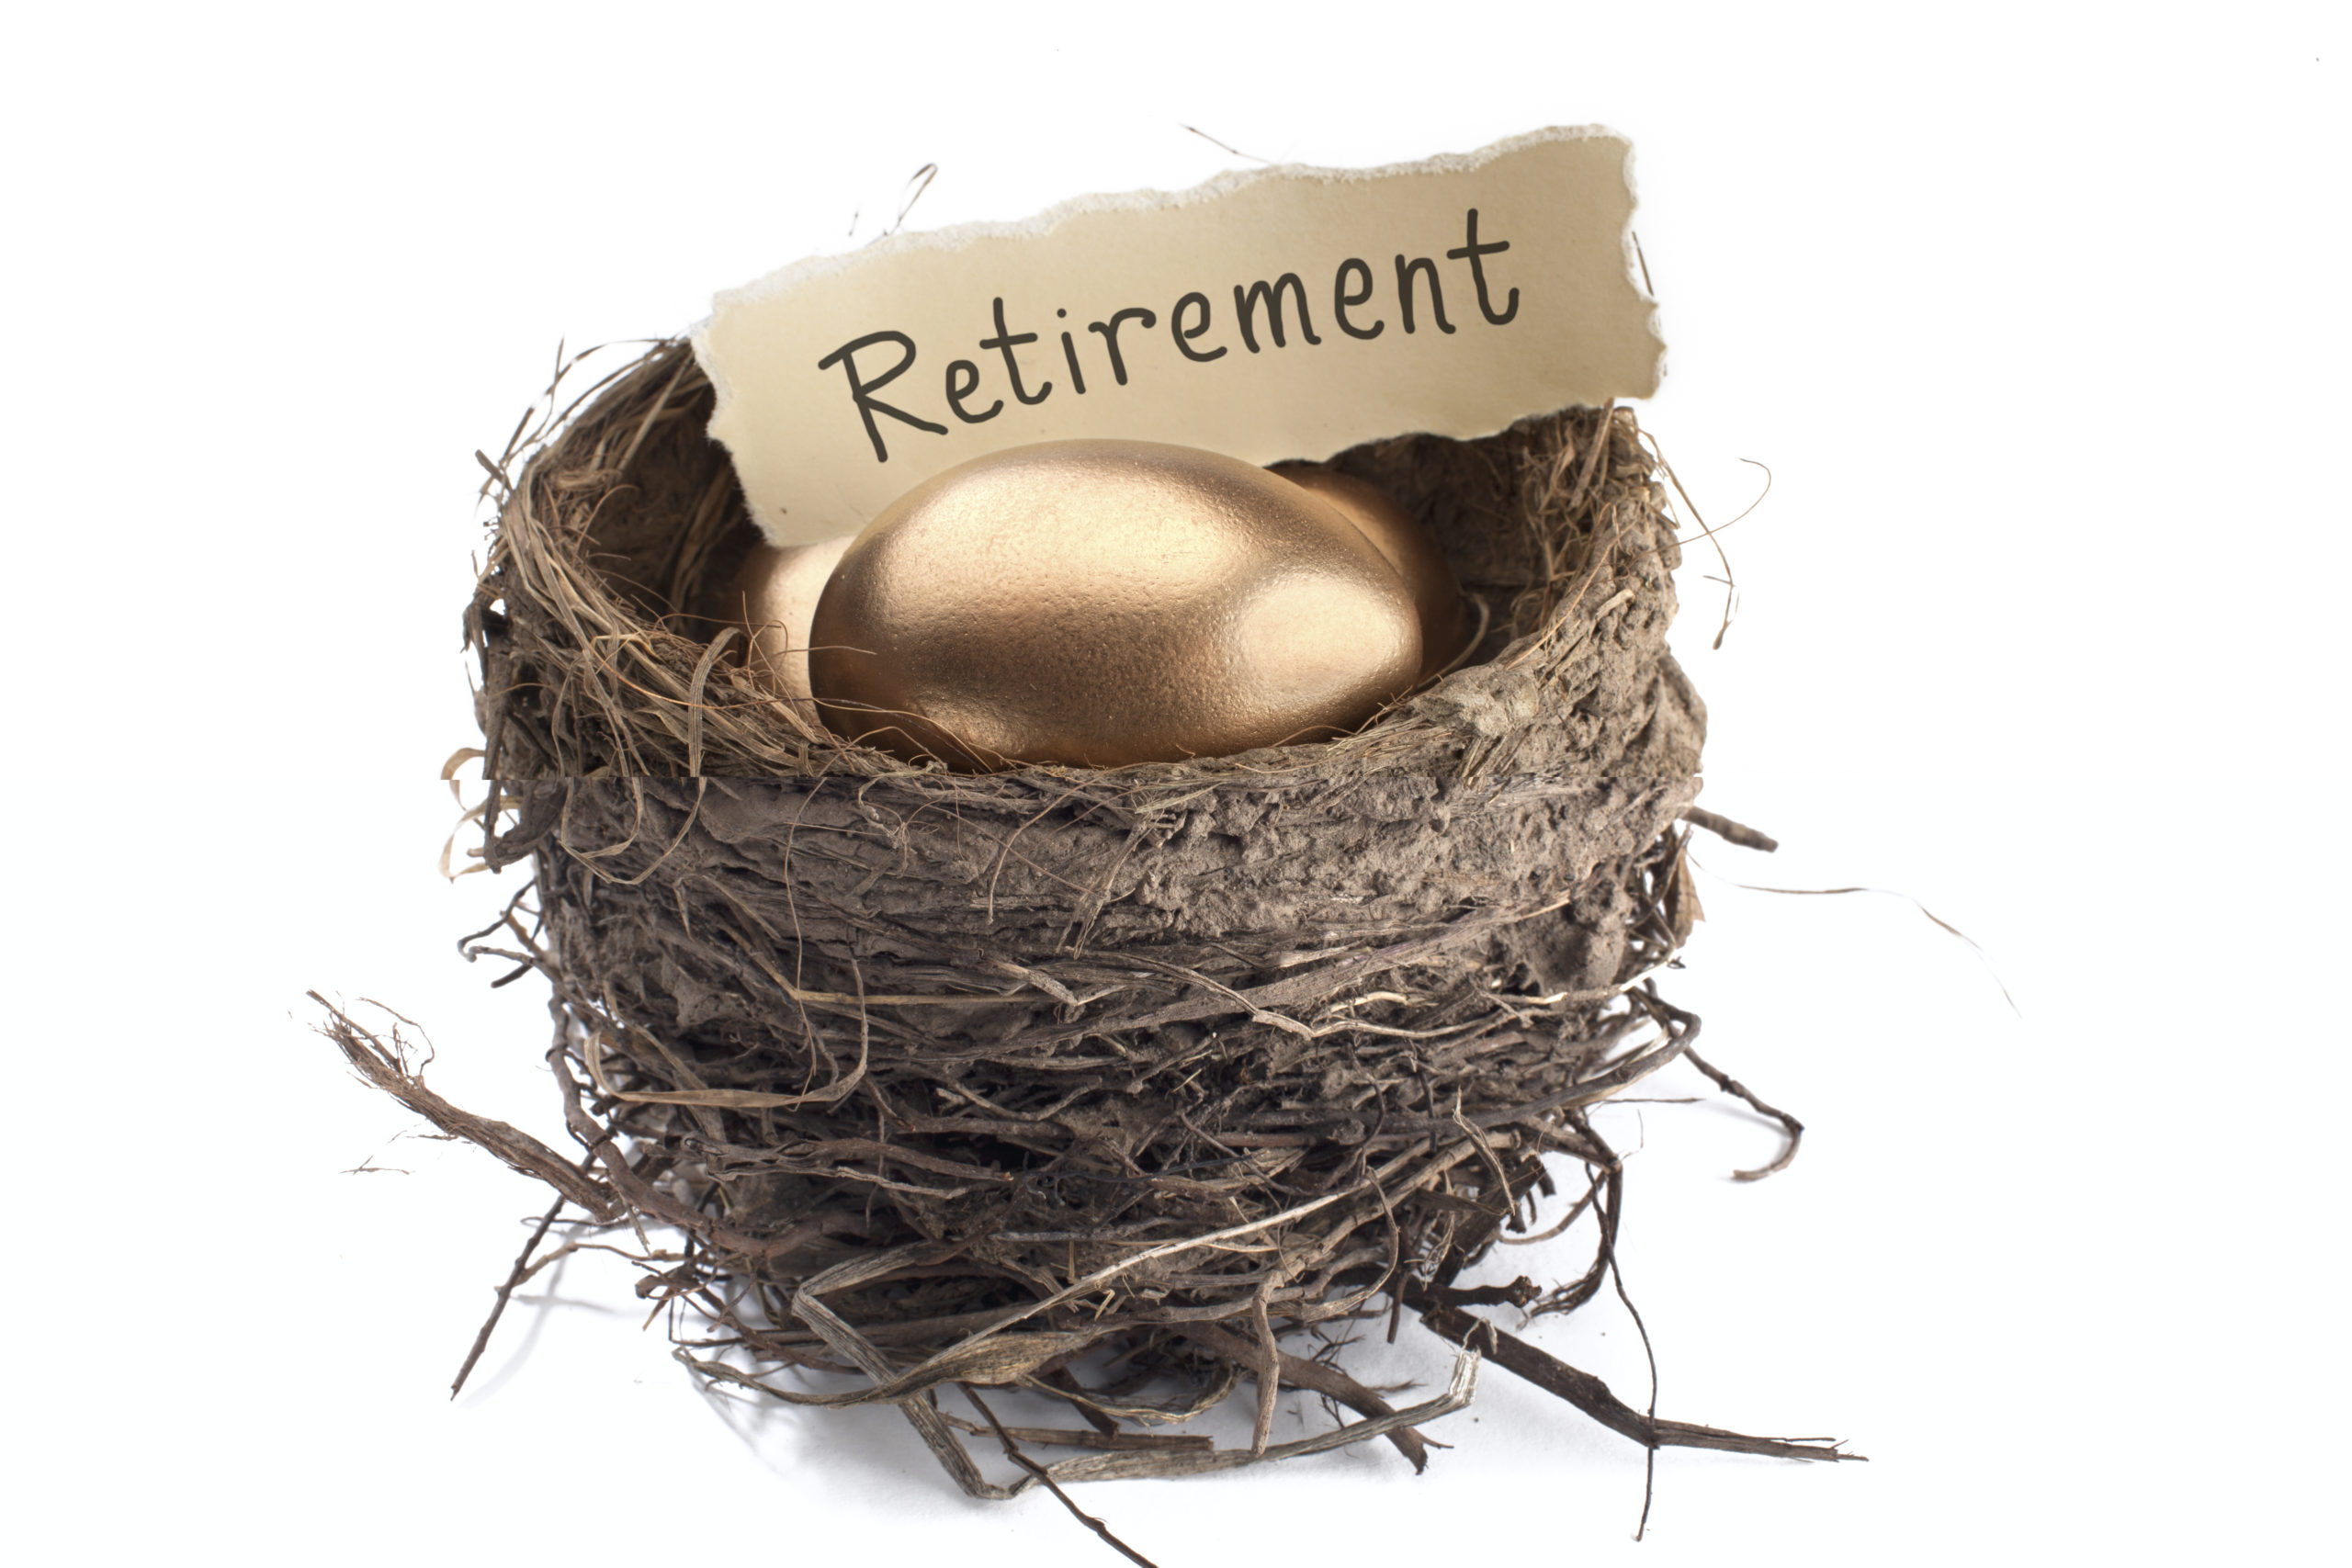 Golden eggs in a next with the title: Retirement